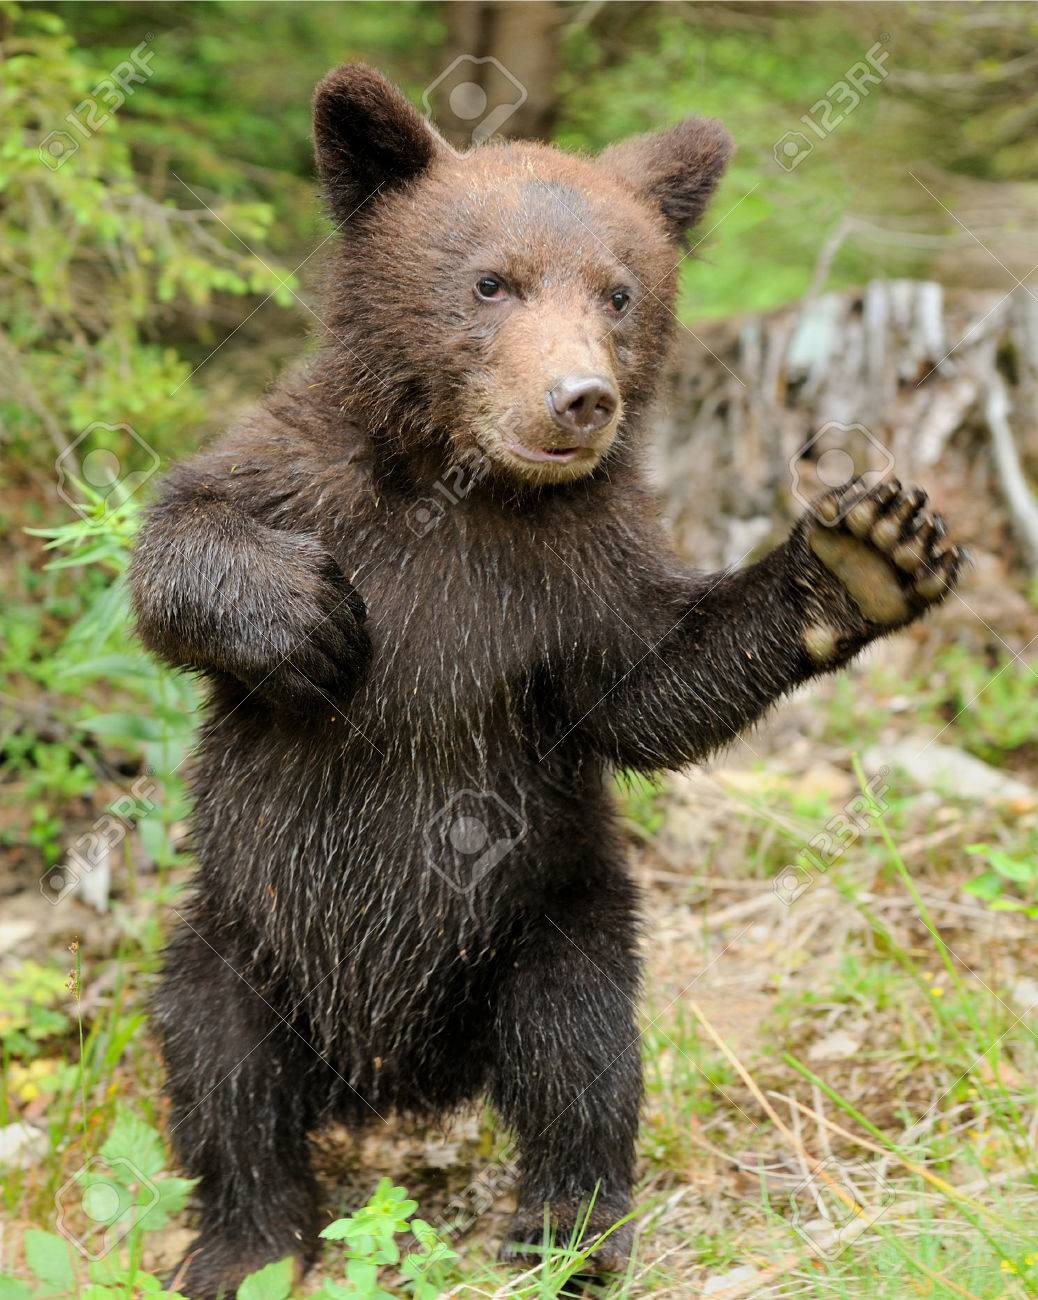 Brown bear cub in a forest Standard-Bild - 37413925